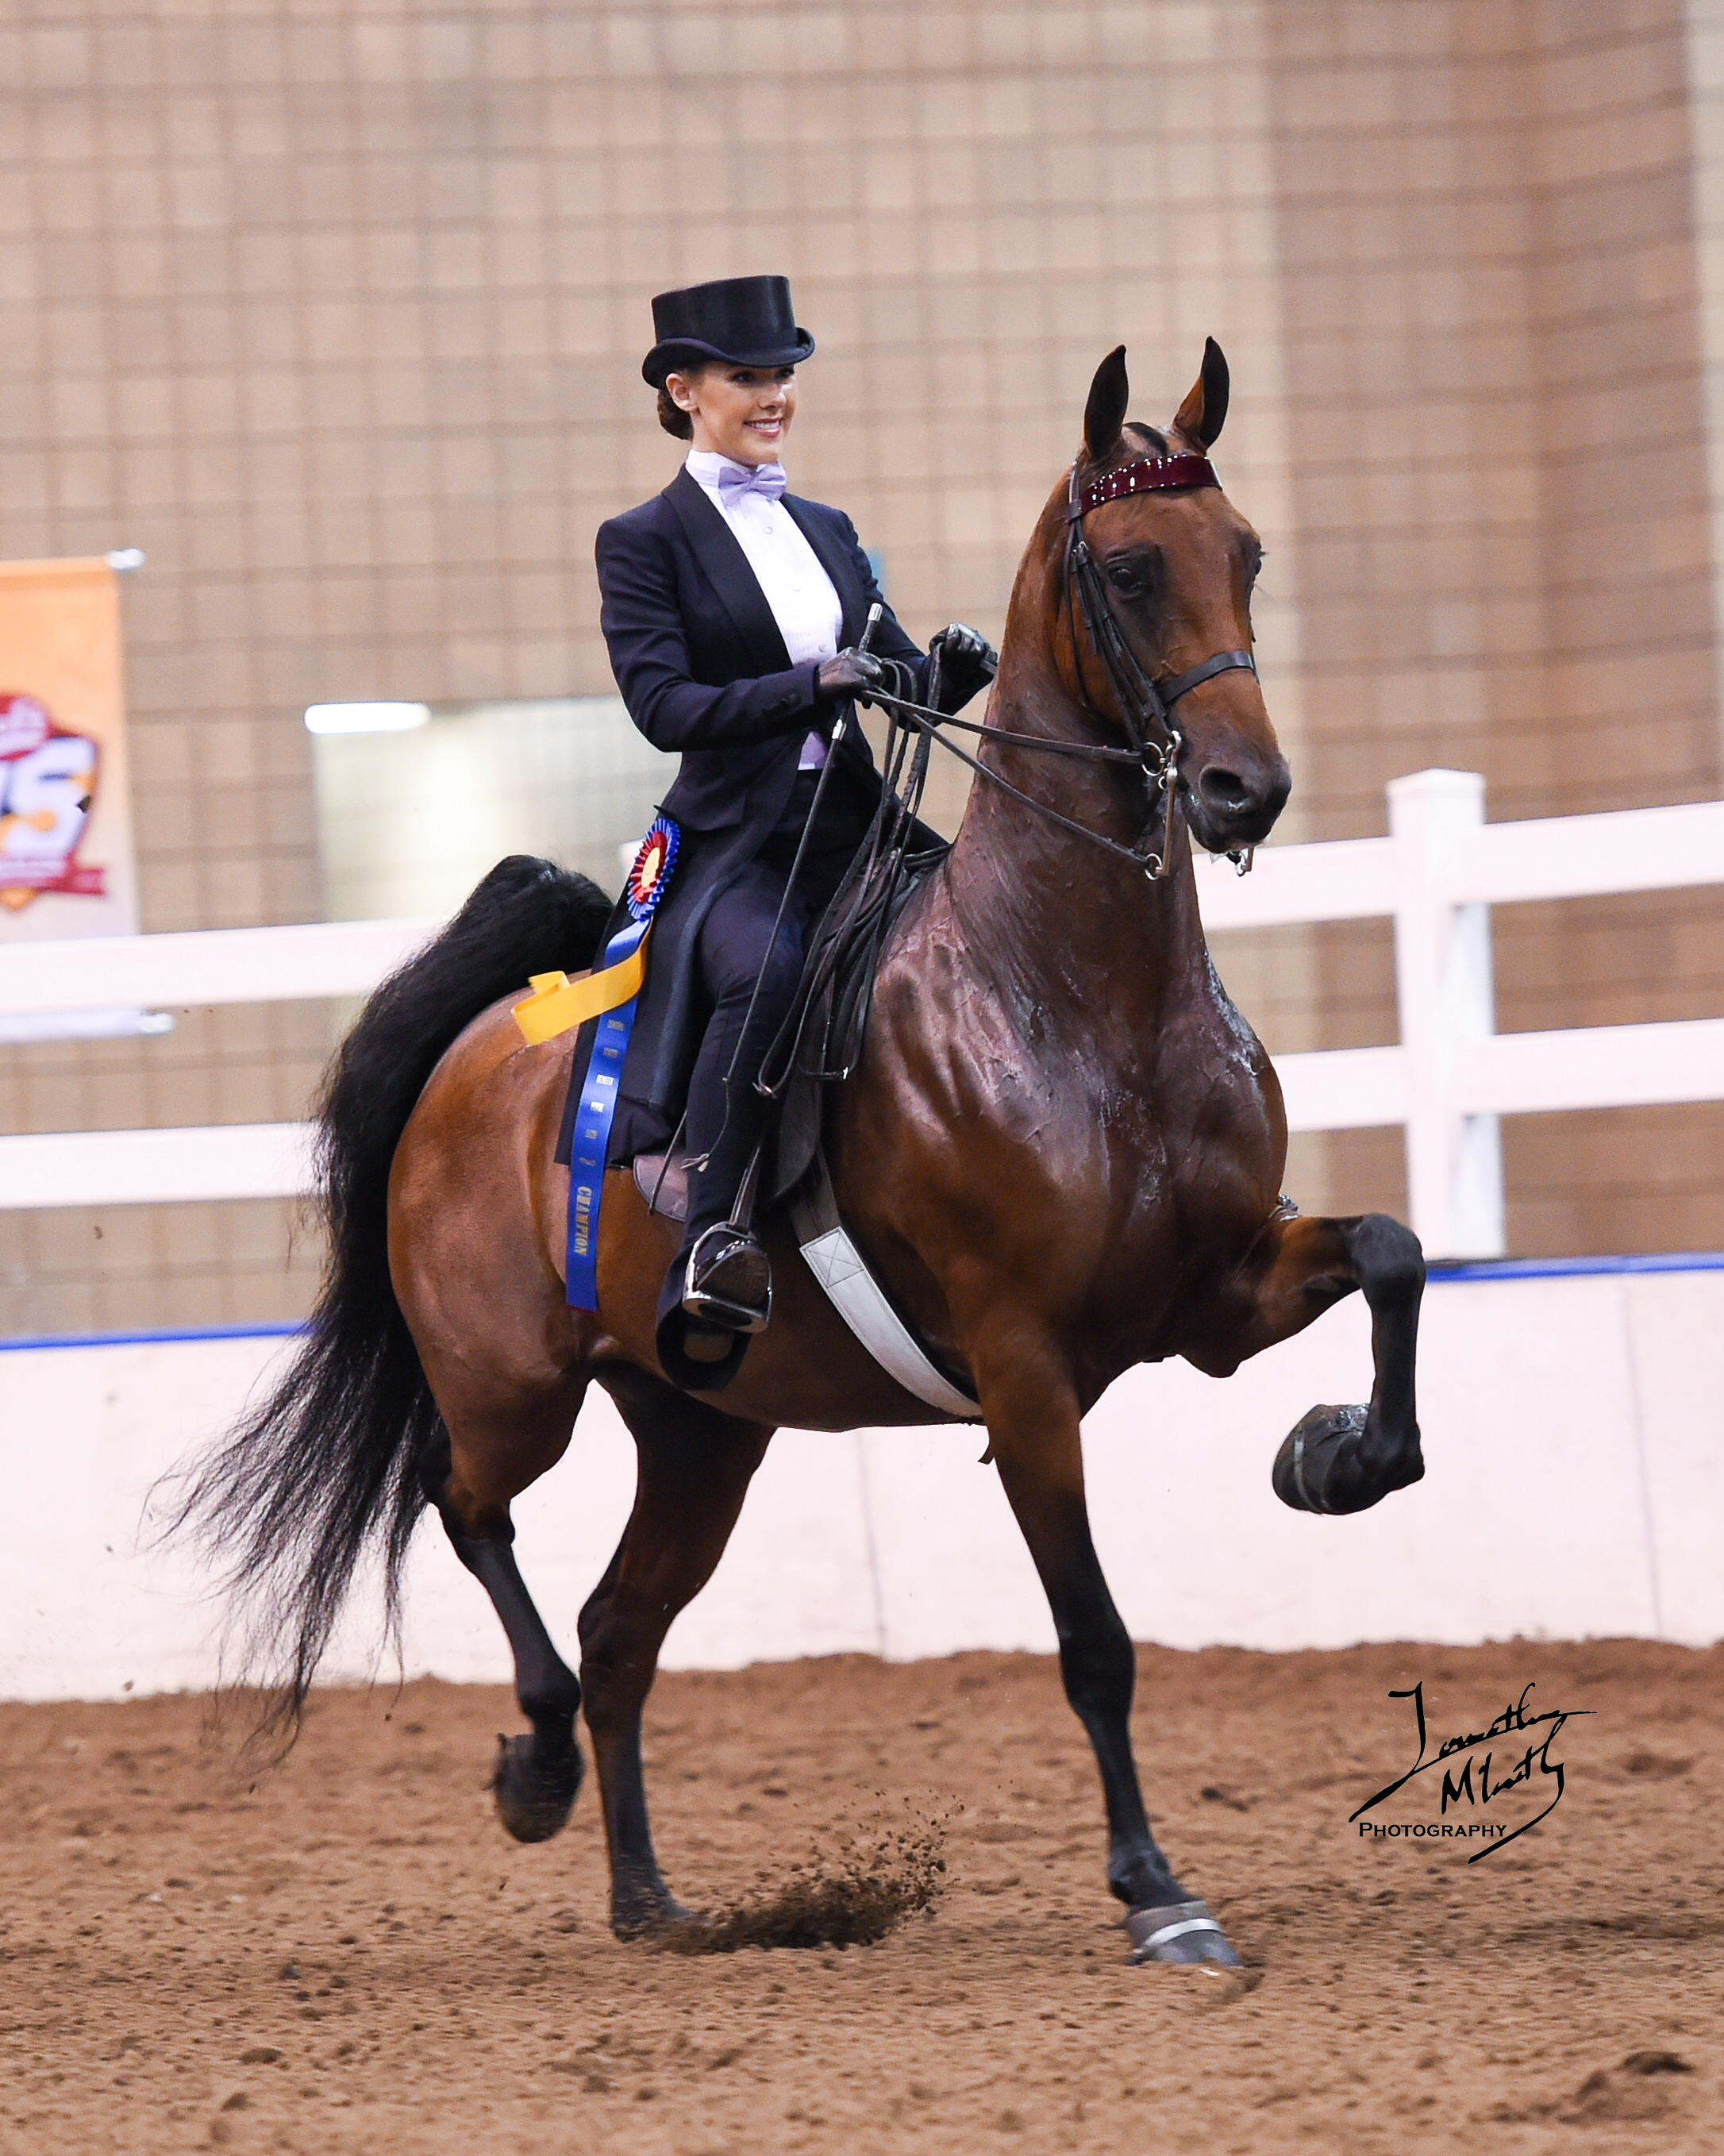 Sca Blog 187 Sca Student Places In Top 10 In Equestrian